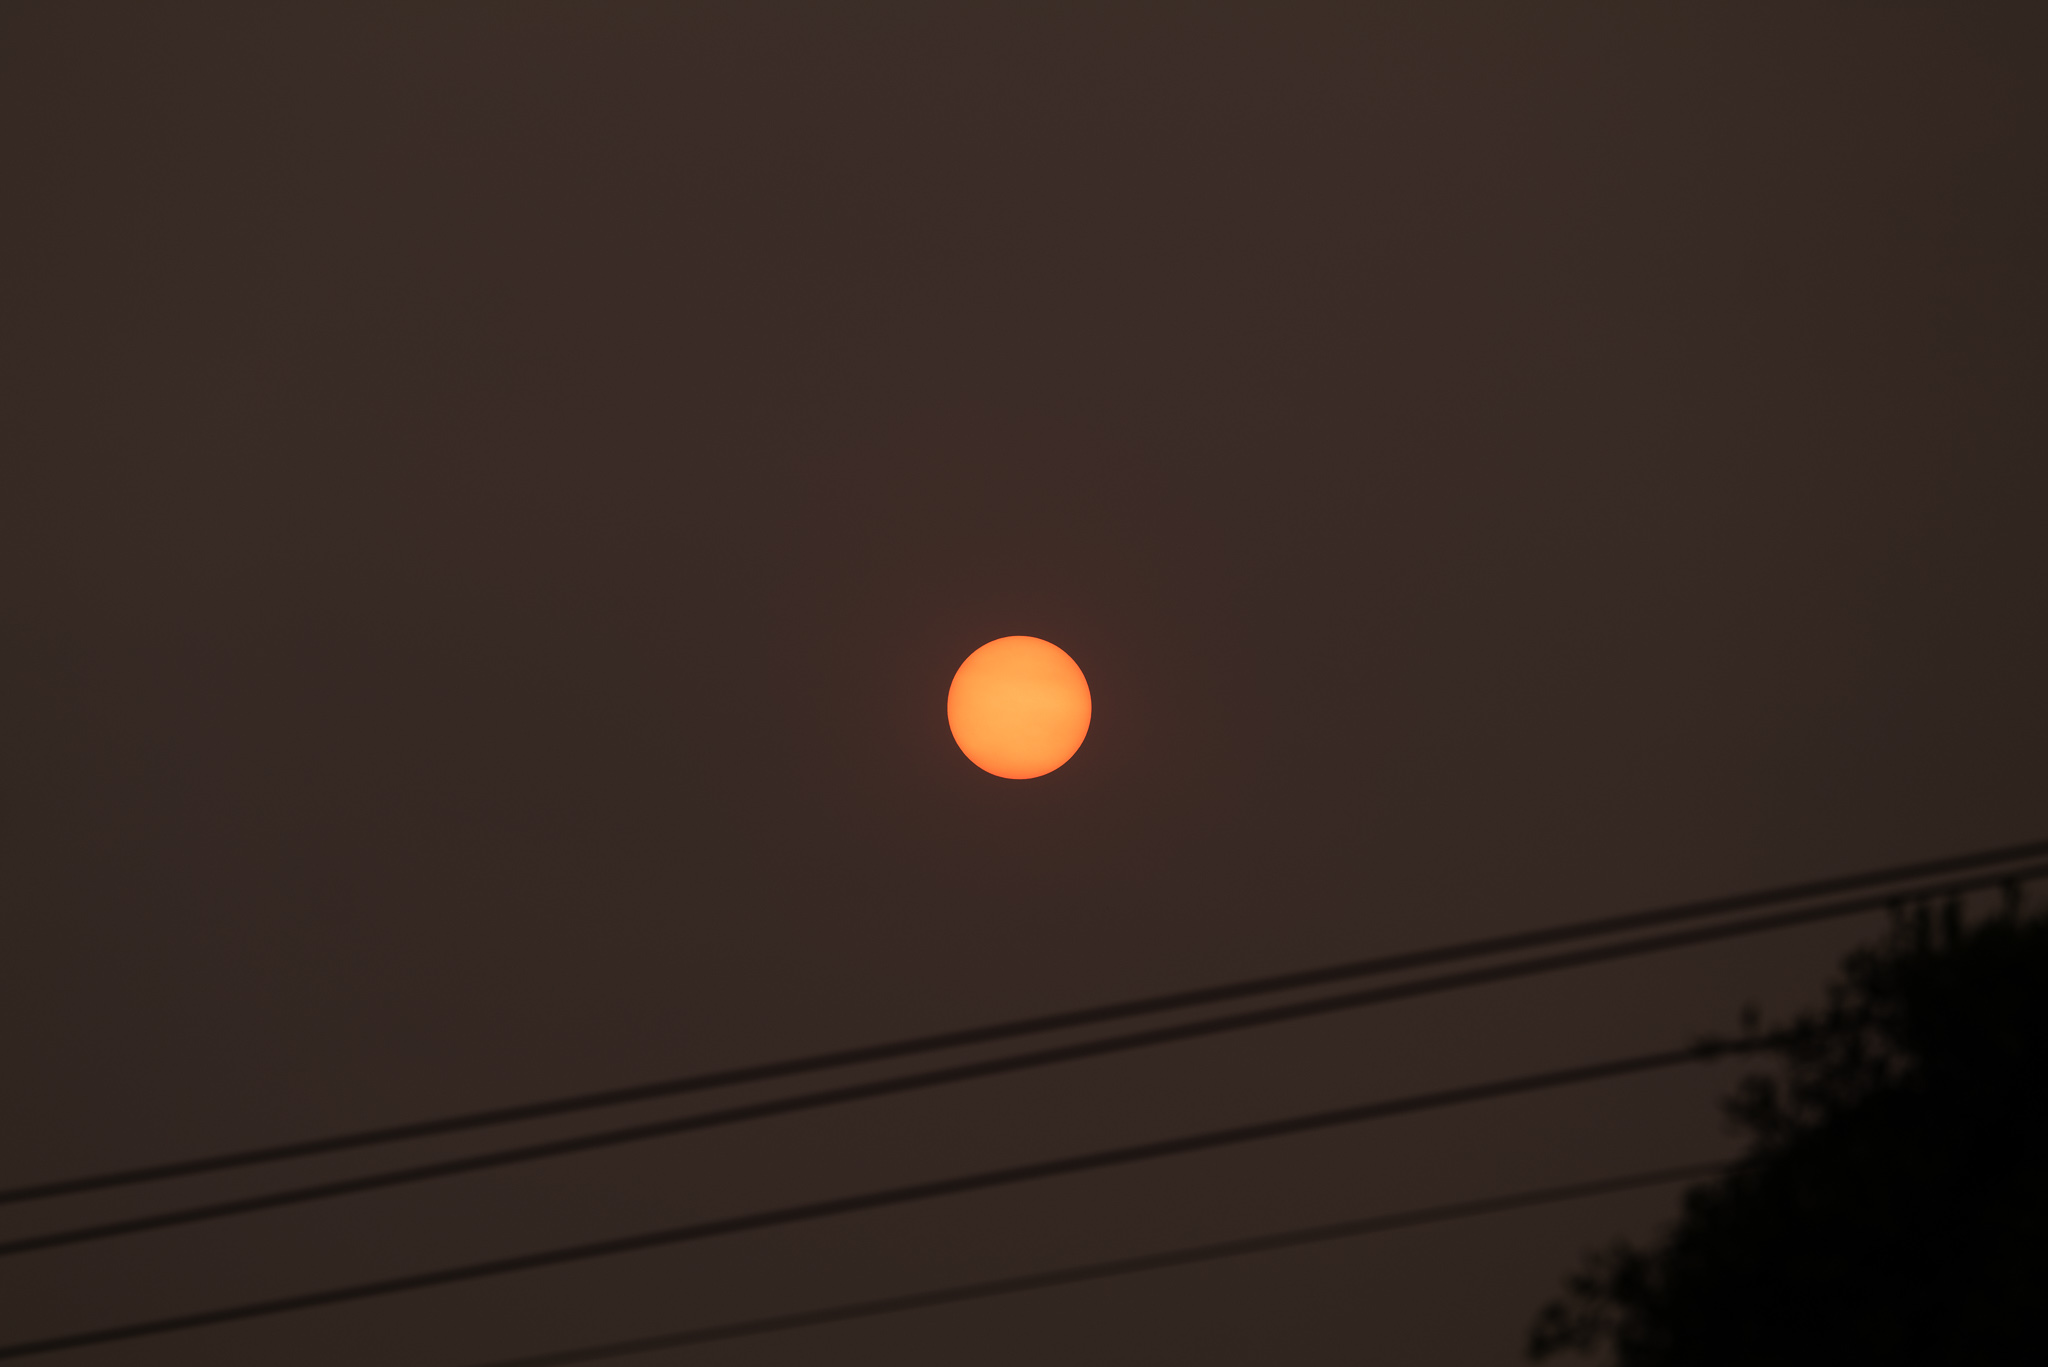 The unedited photo out of the camera. Smoky sun.